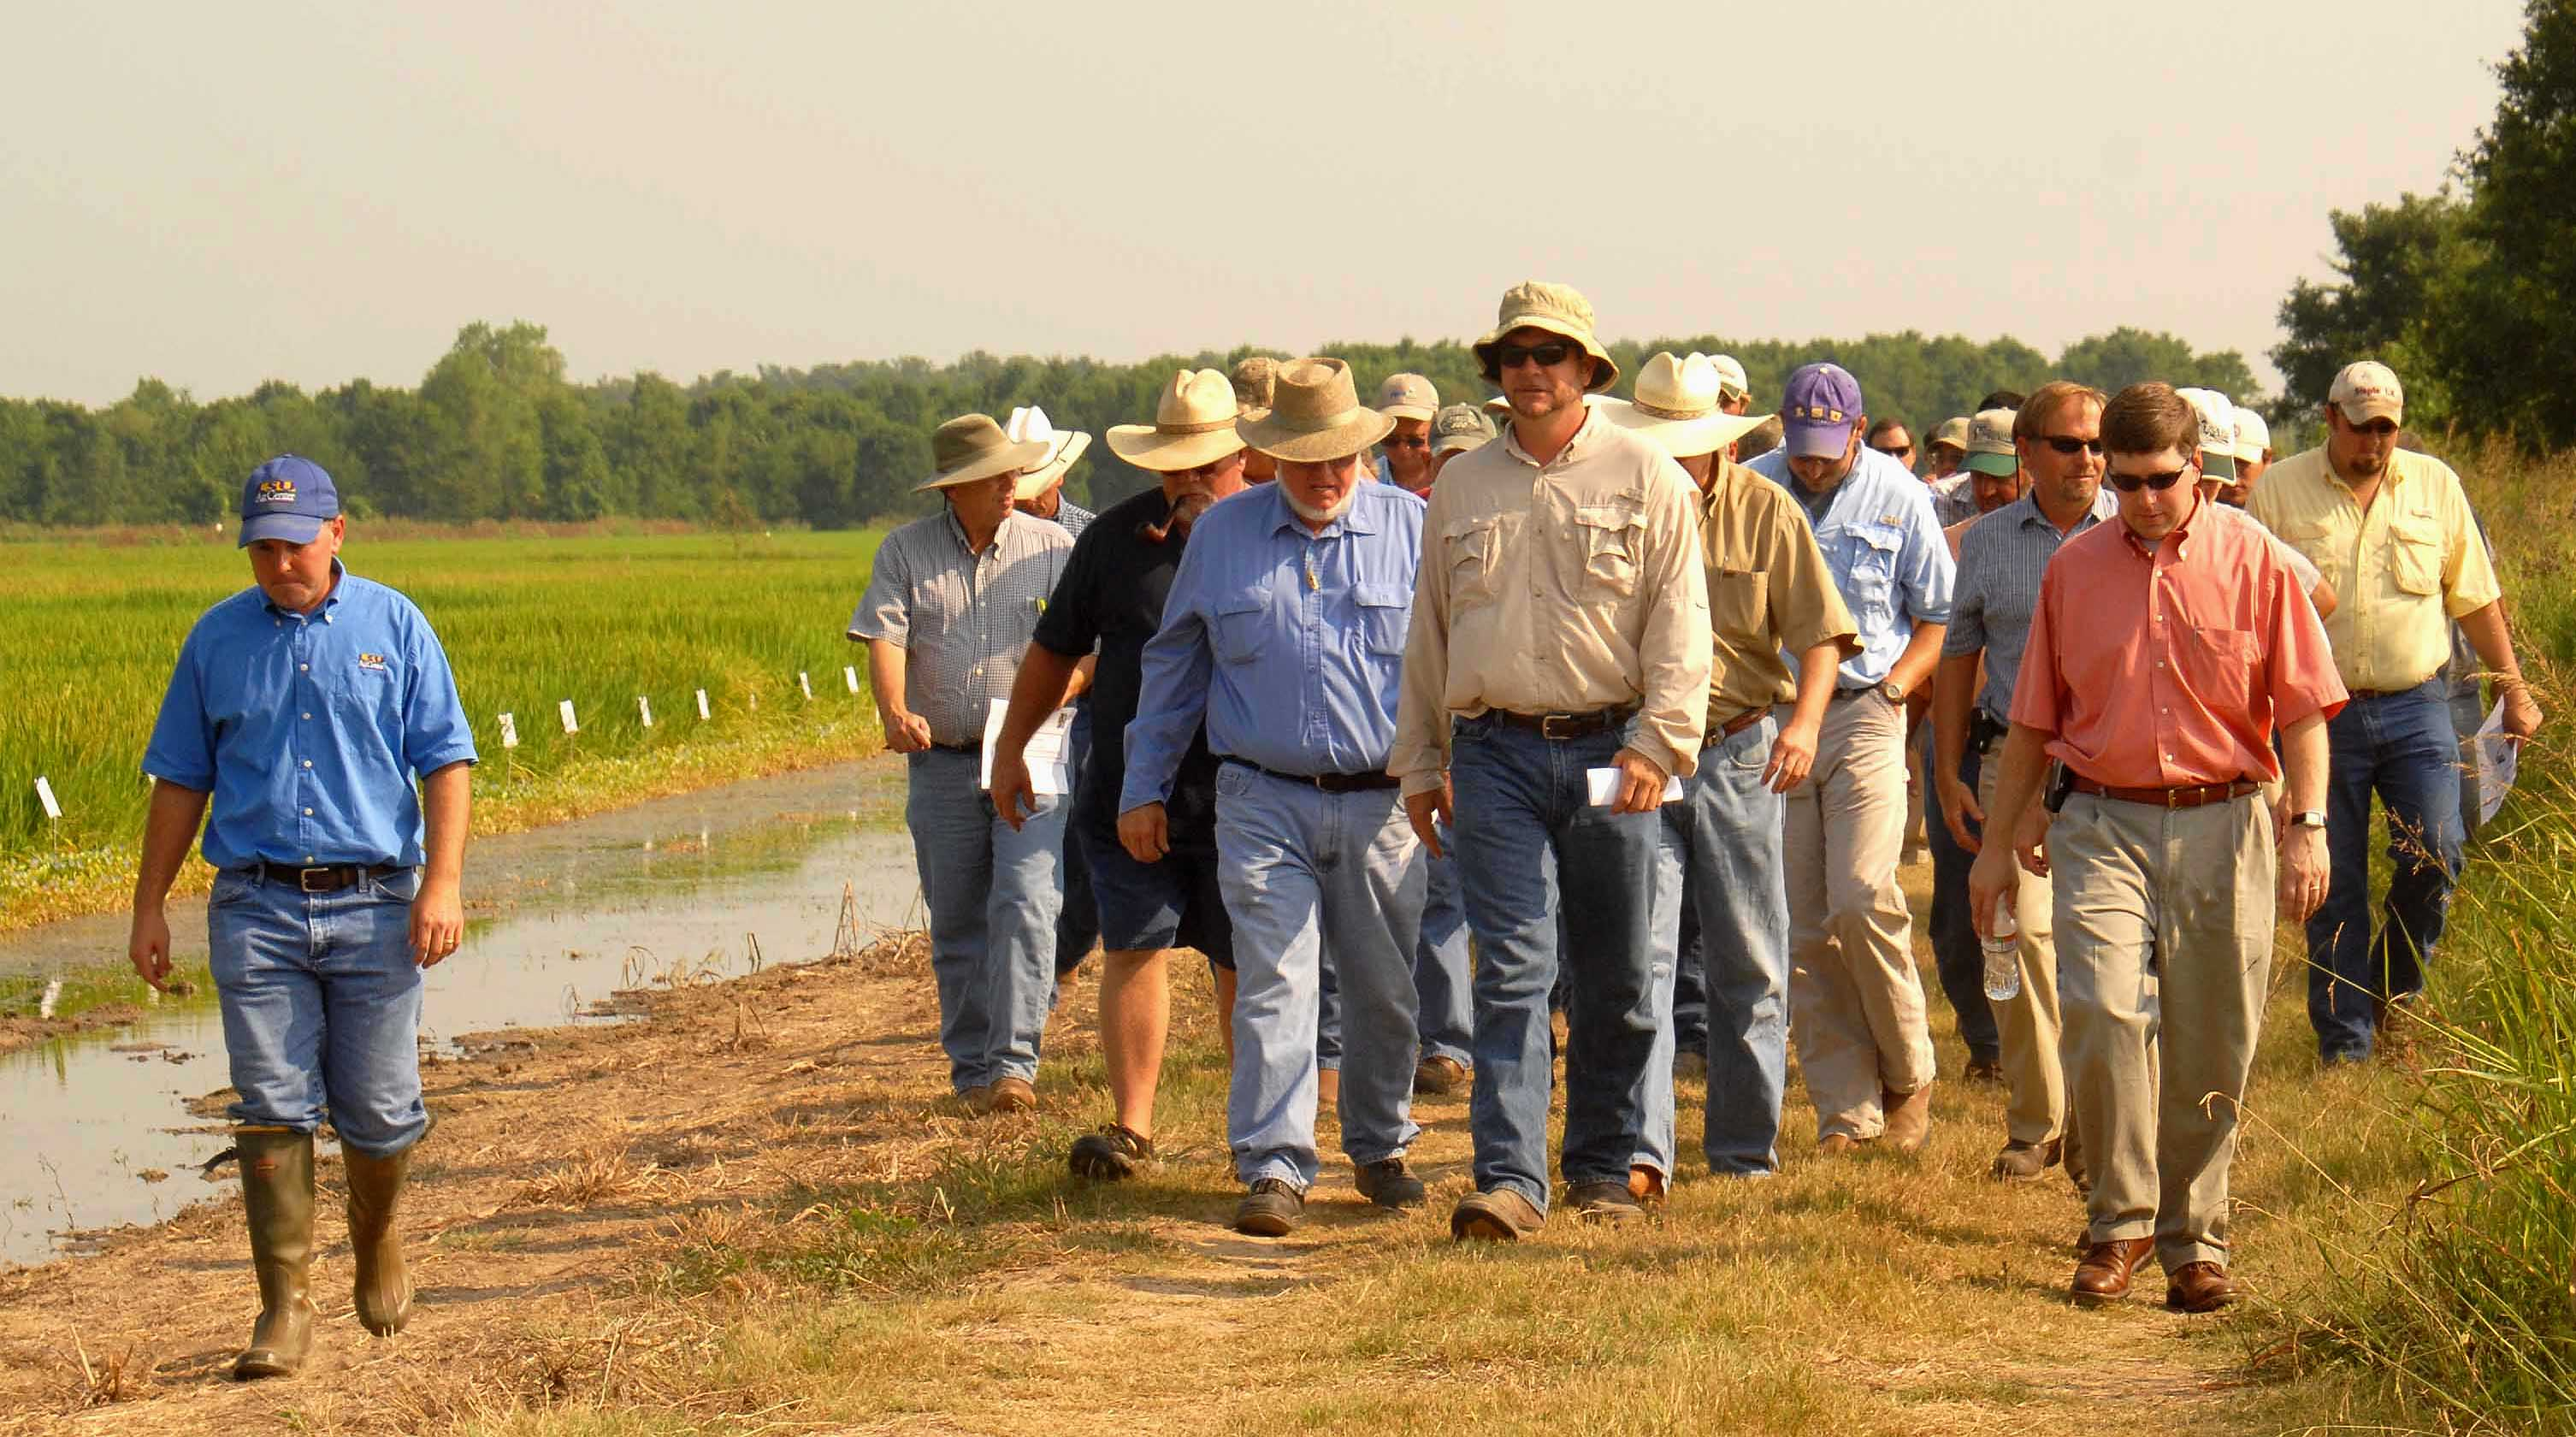 One Clearfield line dropped in favor of two others, farmers told at rice field day